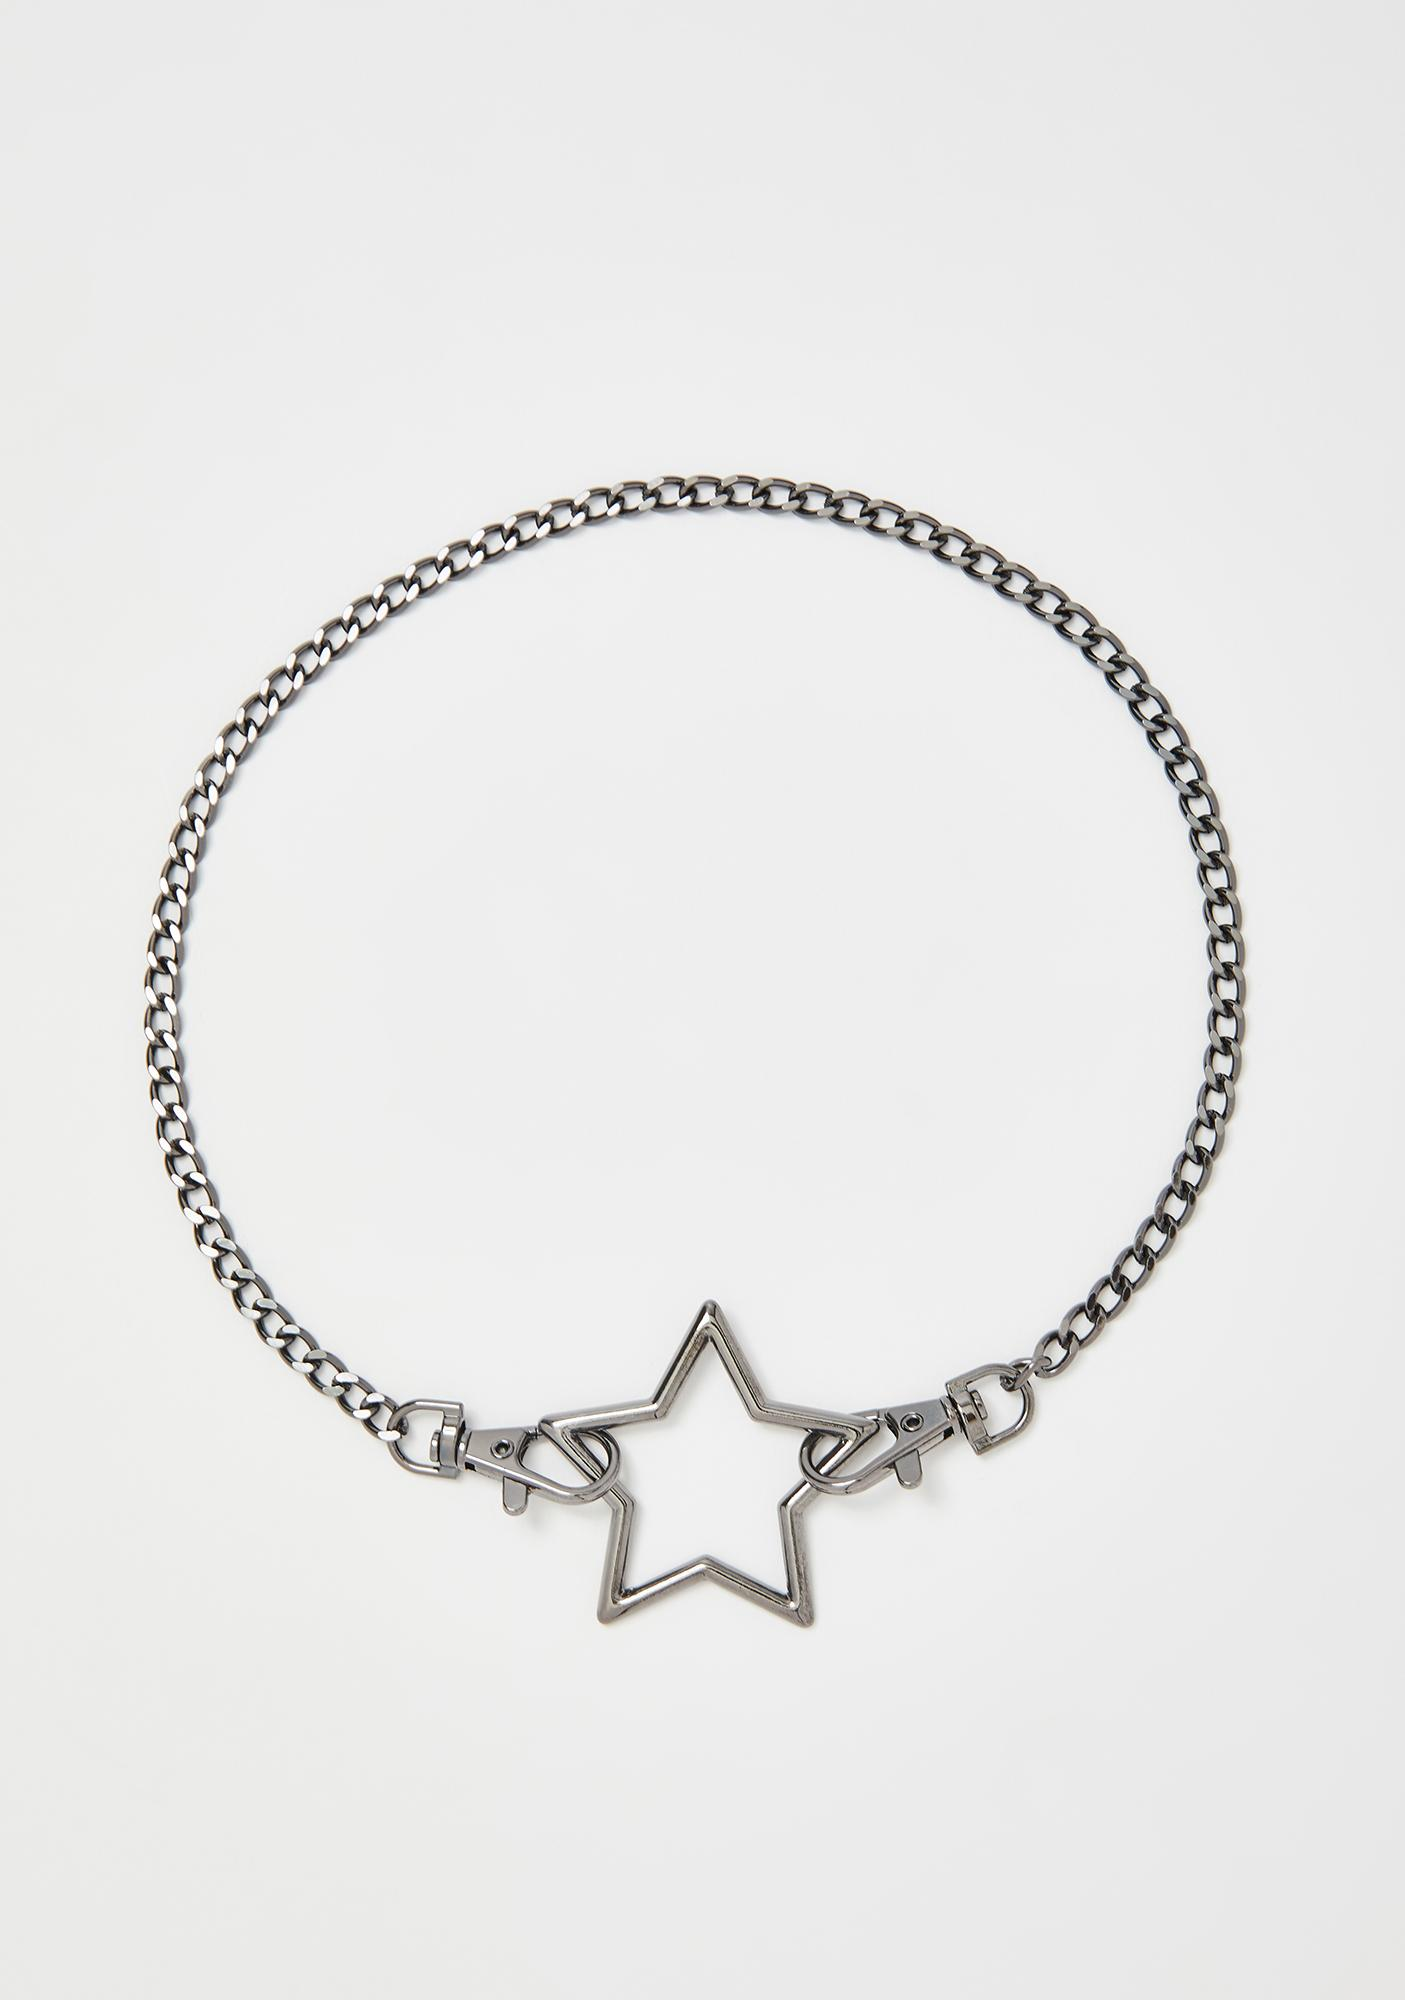 Starlight Seduction Chain Necklace